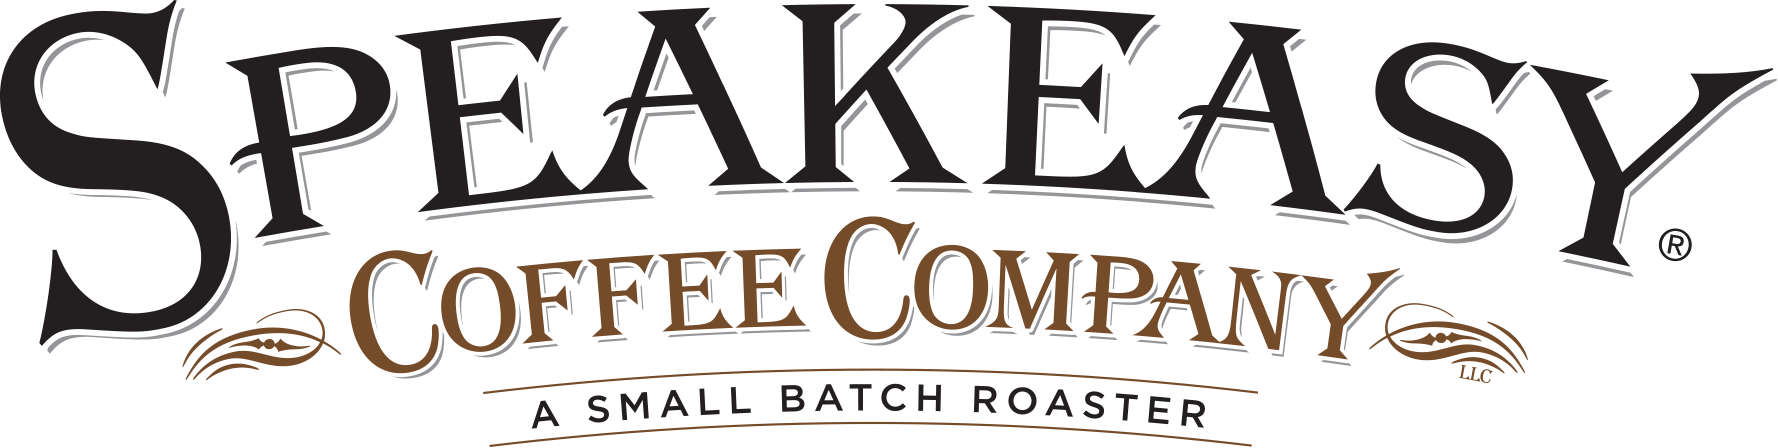 Speakeasy Coffee Company